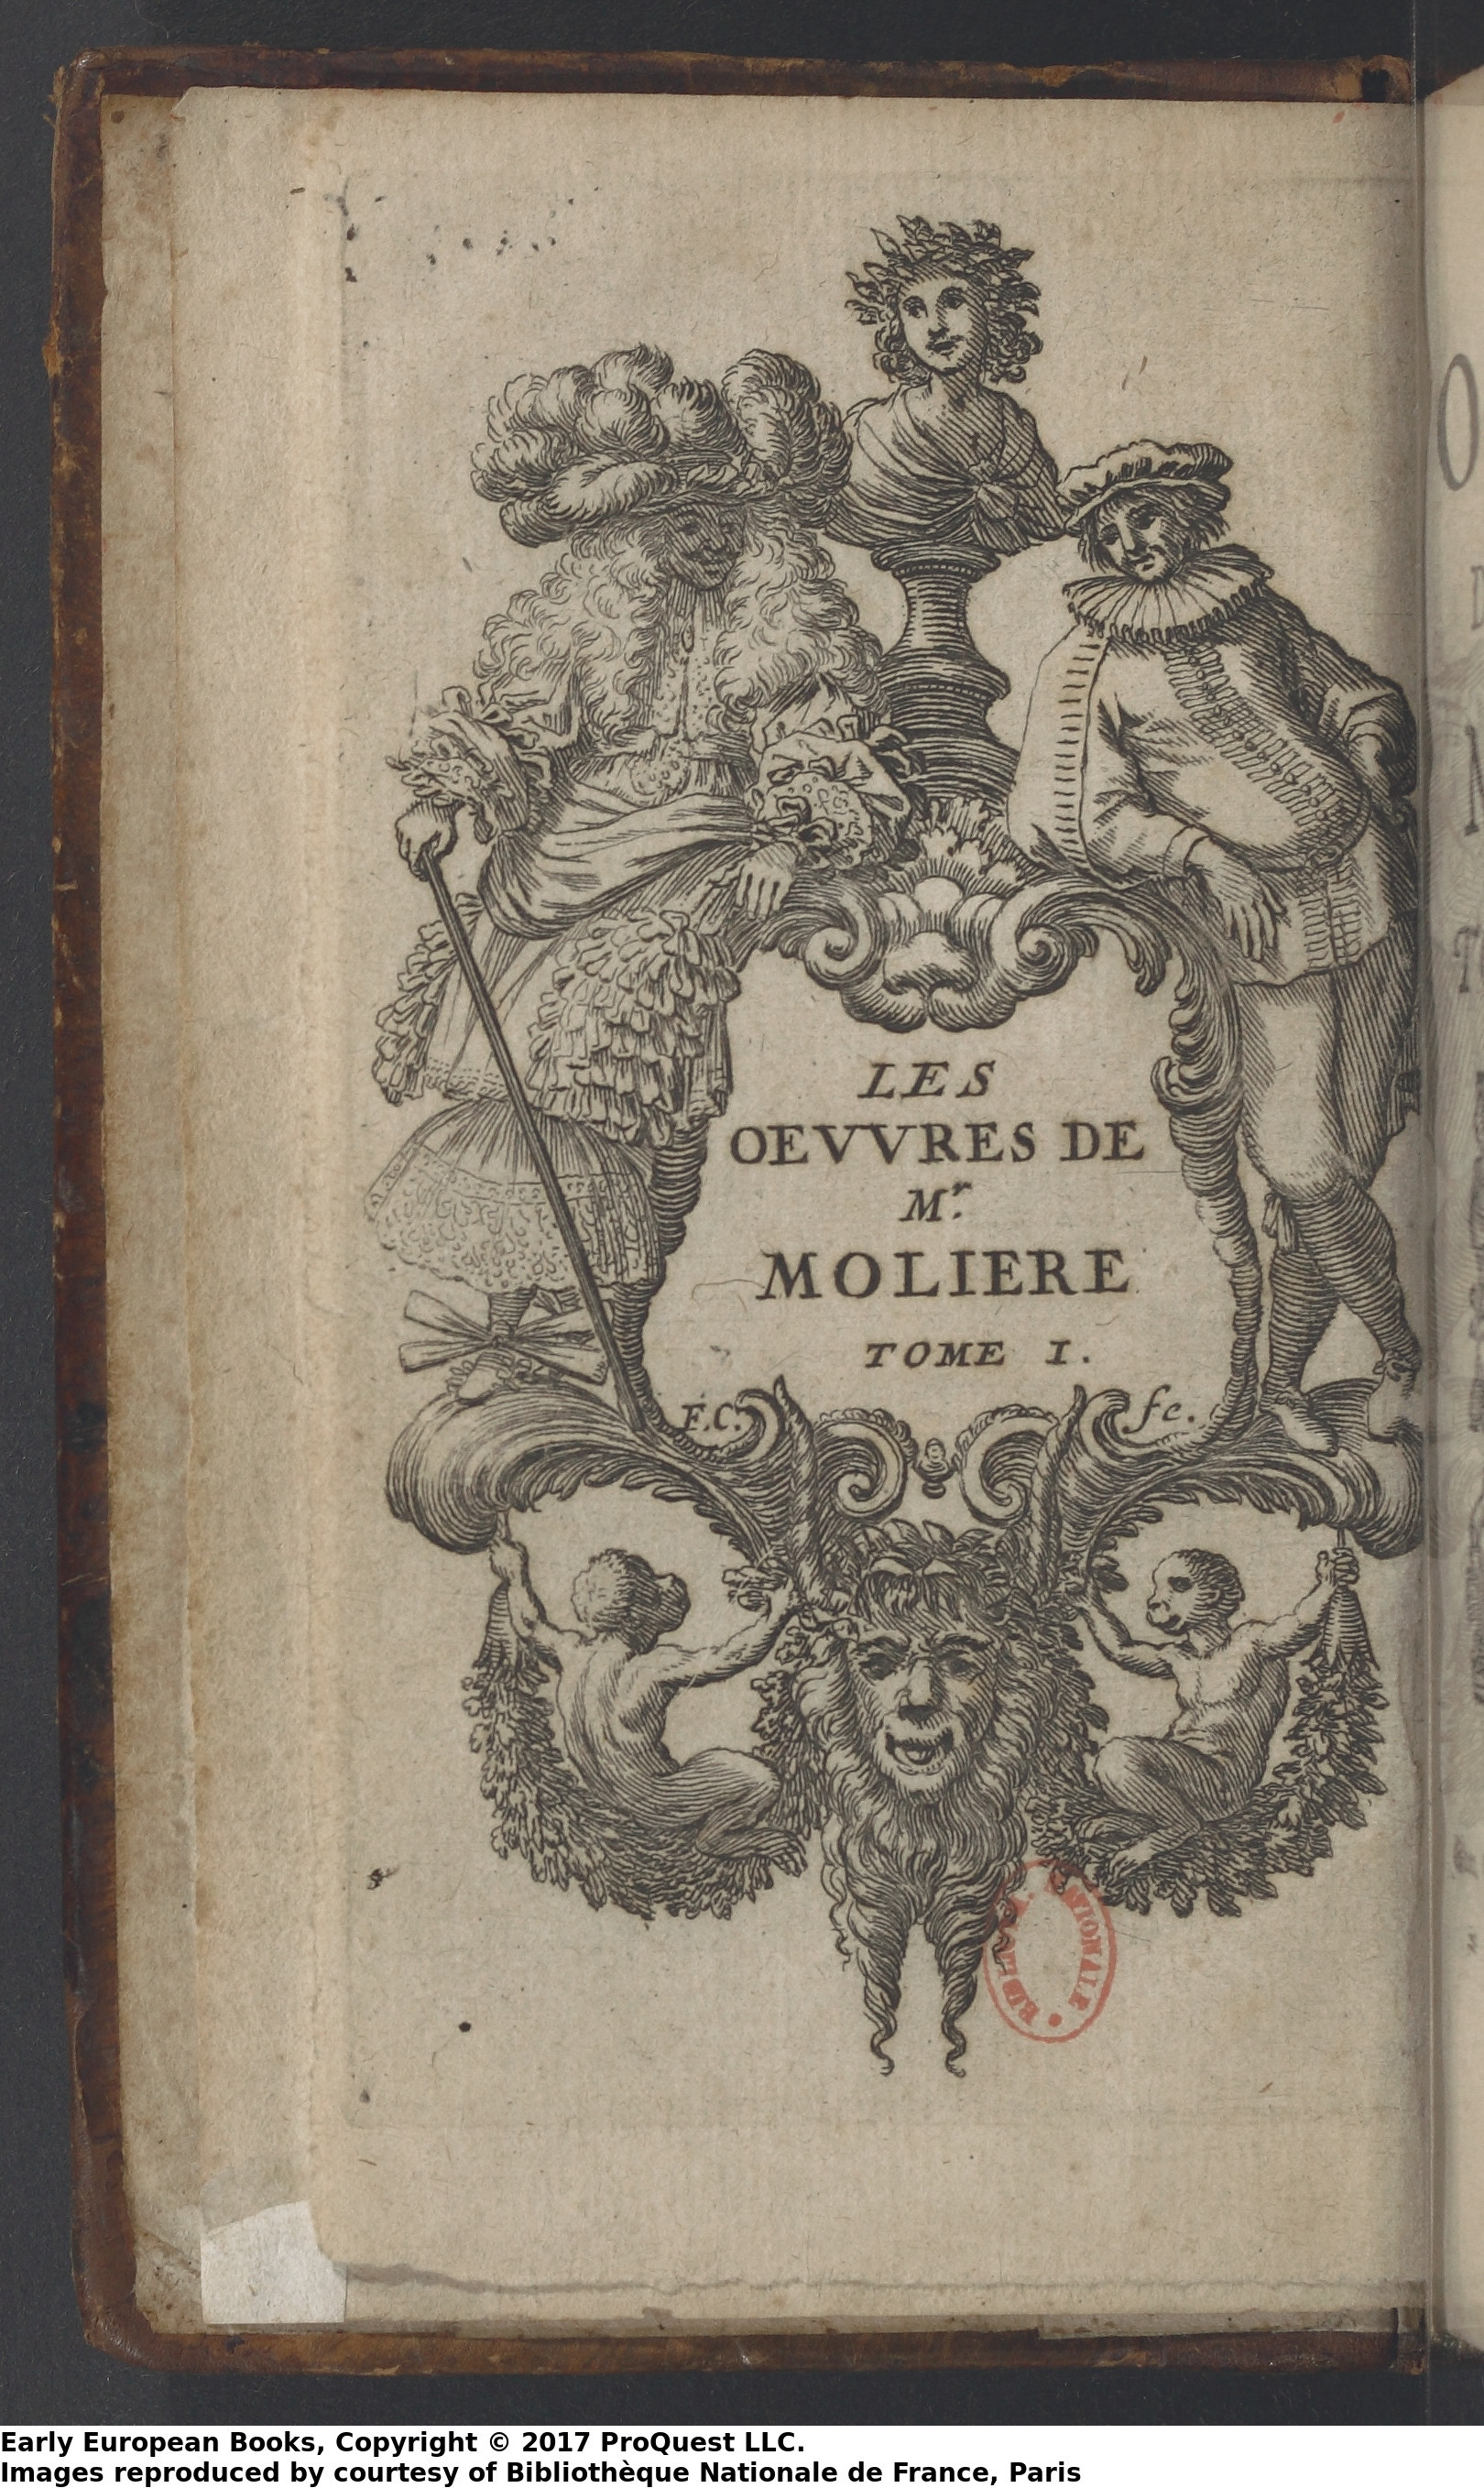 Les Ouvres des Mr Moliere Tome I ed Paris 1673 - Coat of Arms